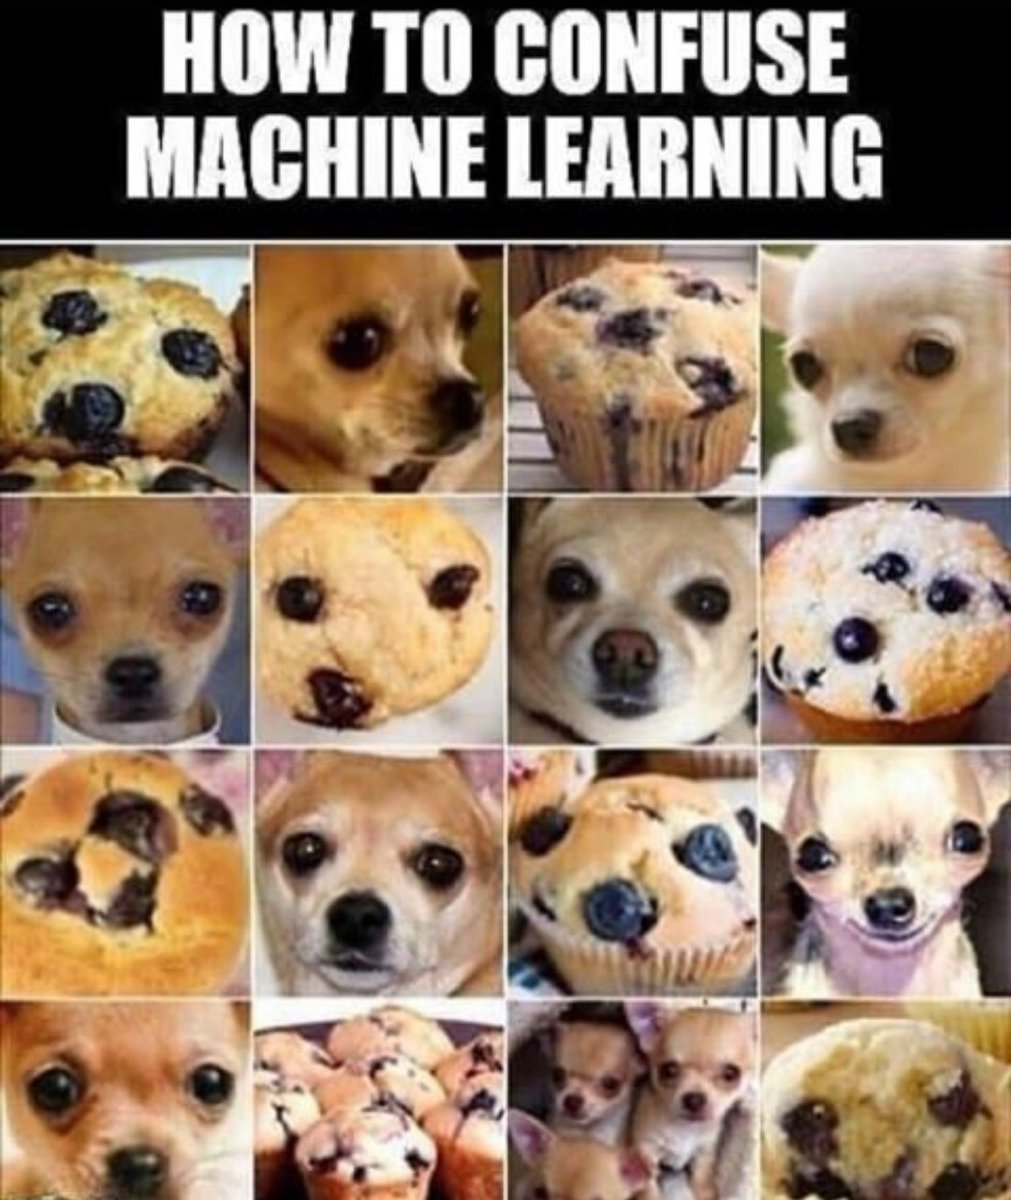 If #MachineLearning can figure it out, we're in a serious trouble 😂. #100DaysOfMLCode #ArtificialIntelligence #coding #100daysofcodechallenge #Python #100DaysOfCode #programming #Memes https://t.co/u1cd5NF3Ux